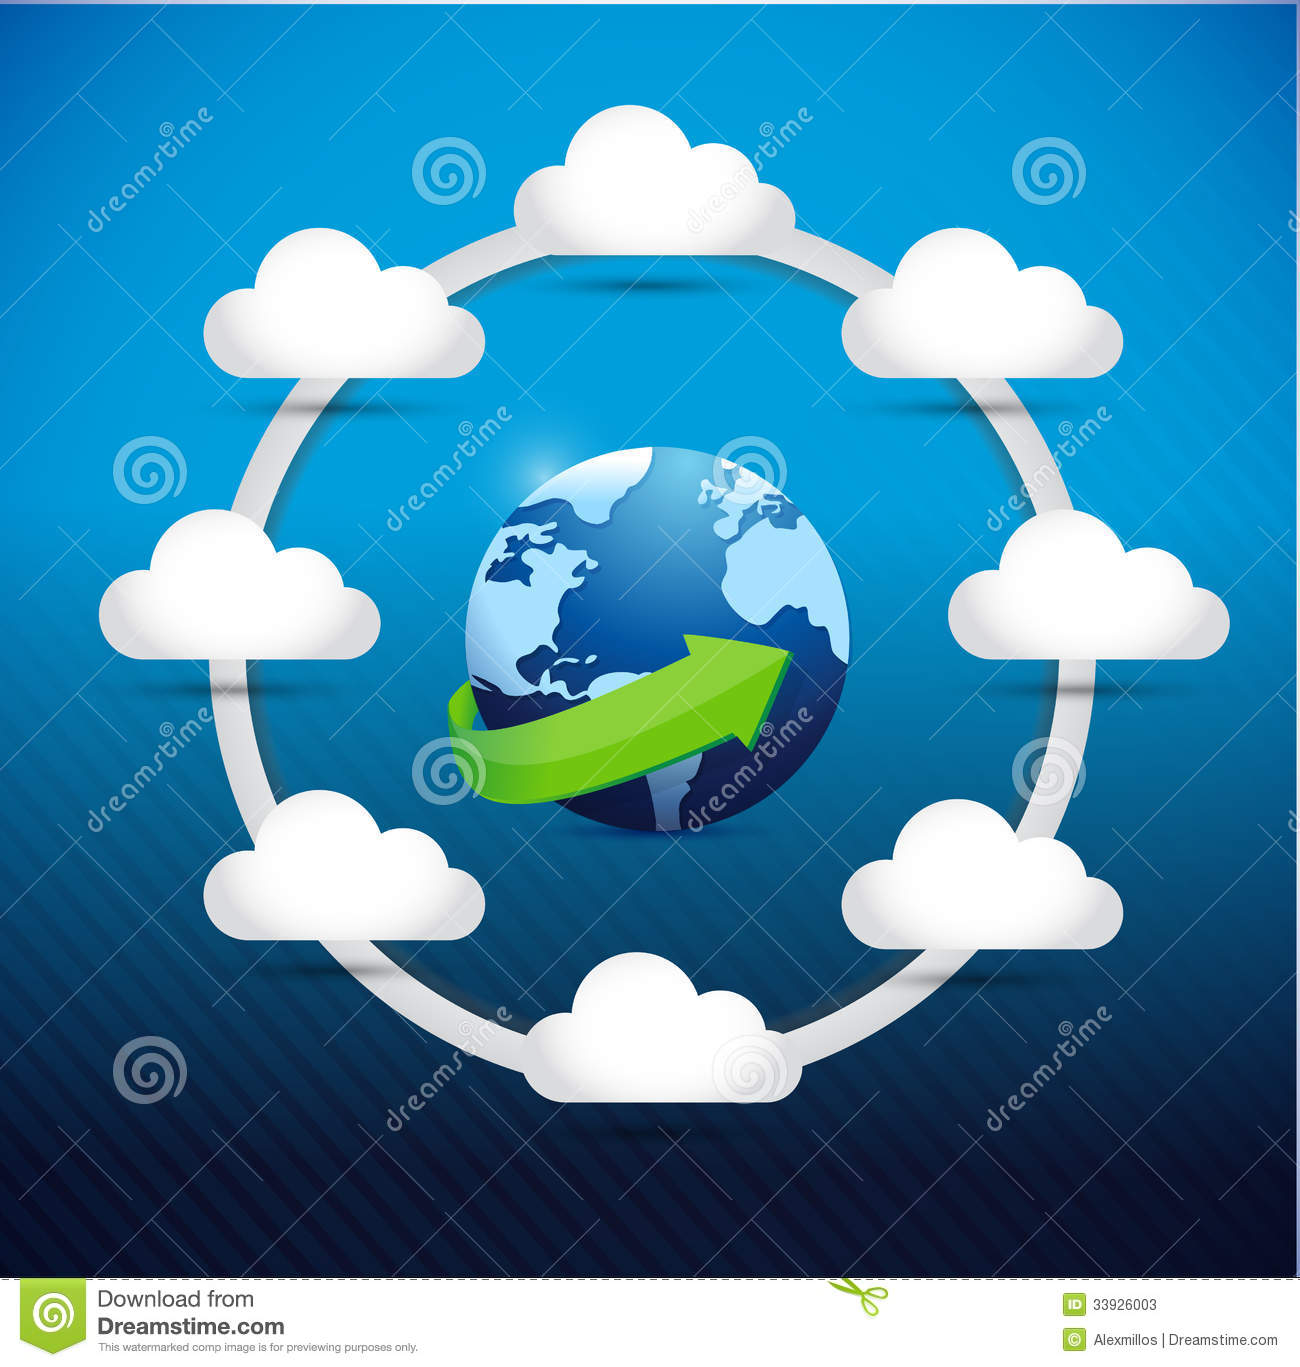 Globe Cloud Computing Network Diagram Concept Stock Photos - Image ...